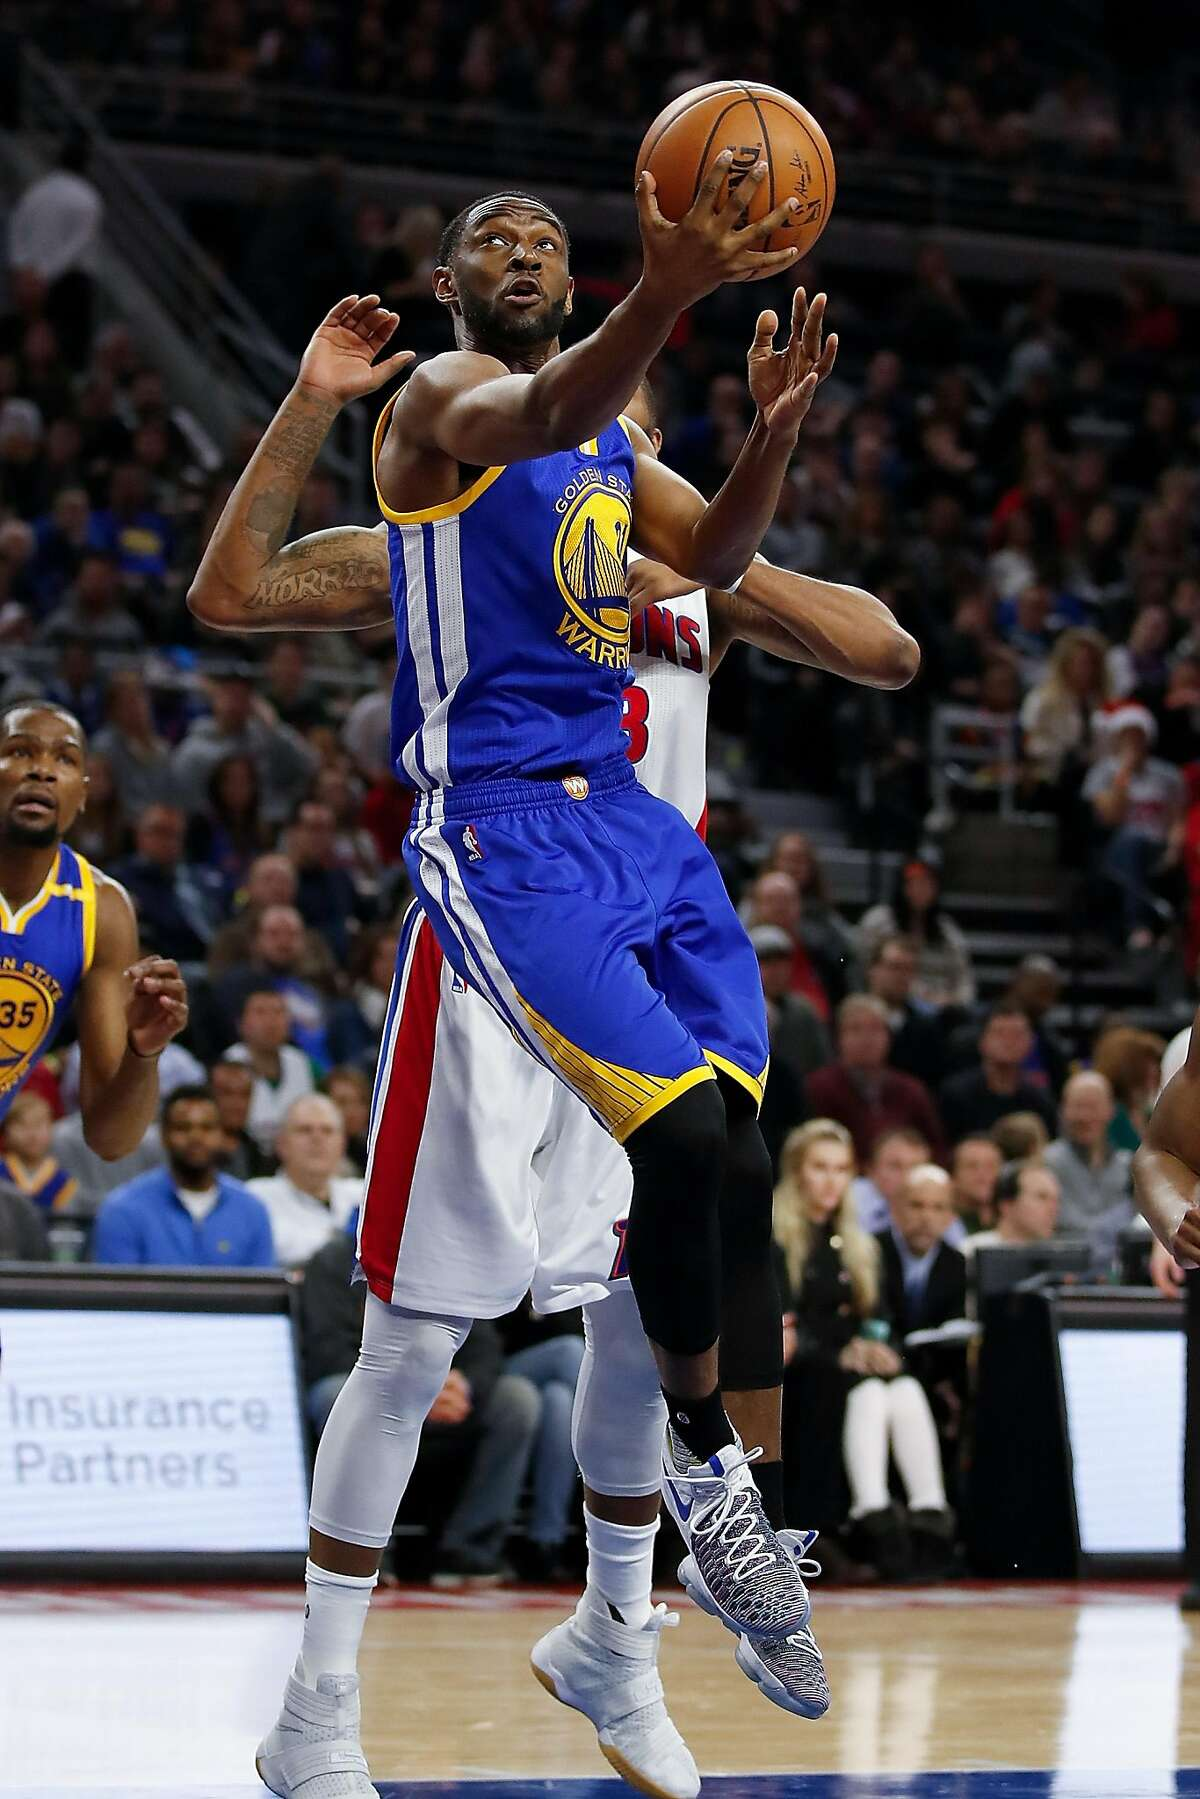 AUBURN HILLS, MI - DECEMBER 23: Ian Clark #21 of the Golden State Warriors tries to get a first half shot off while playing the Detroit Pistons at the Palace of Auburn Hills on December 23, 2016 in Auburn Hills, Michigan. NOTE TO USER: User expressly acknowledges and agrees that, by downloading and or using this photograph, User is consenting to the terms and conditions of the Getty Images License Agreement. (Photo by Gregory Shamus/Getty Images)